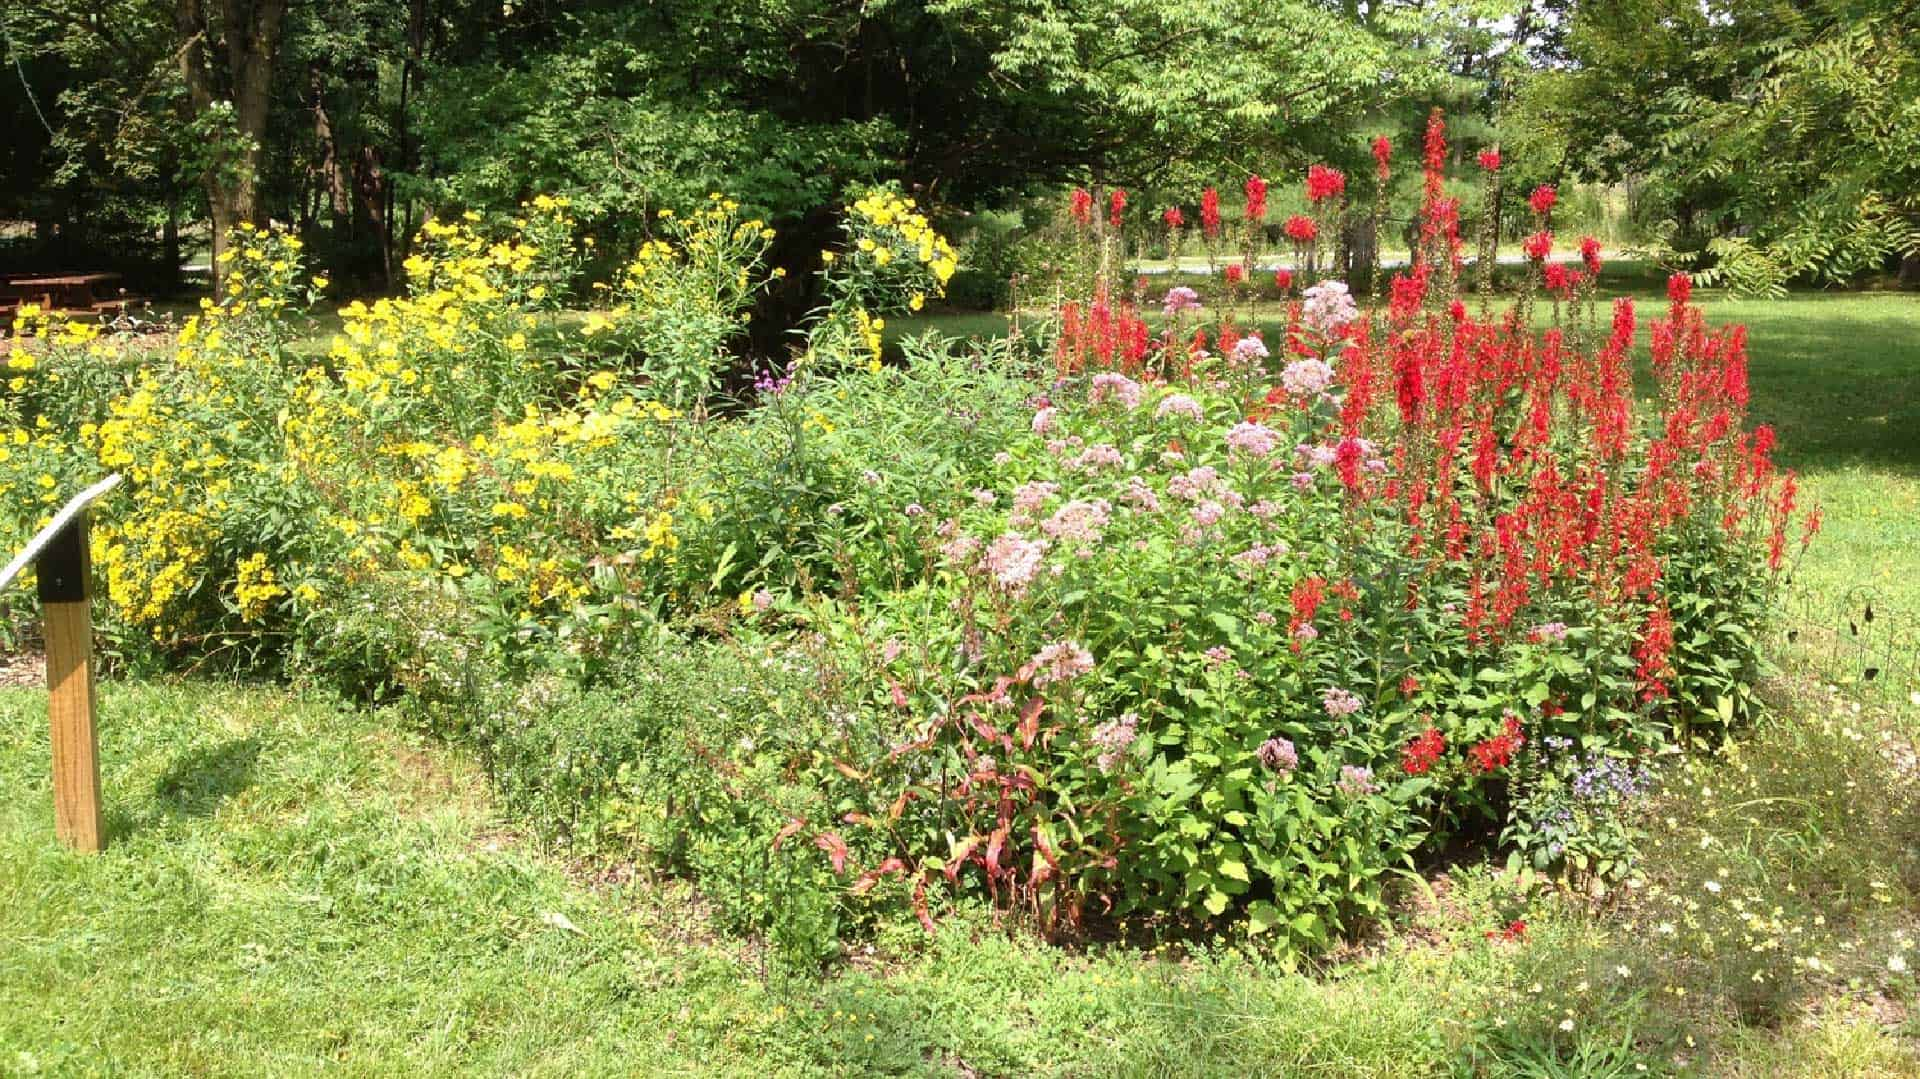 Rain garden native plants with yellow, red and pink flowers.